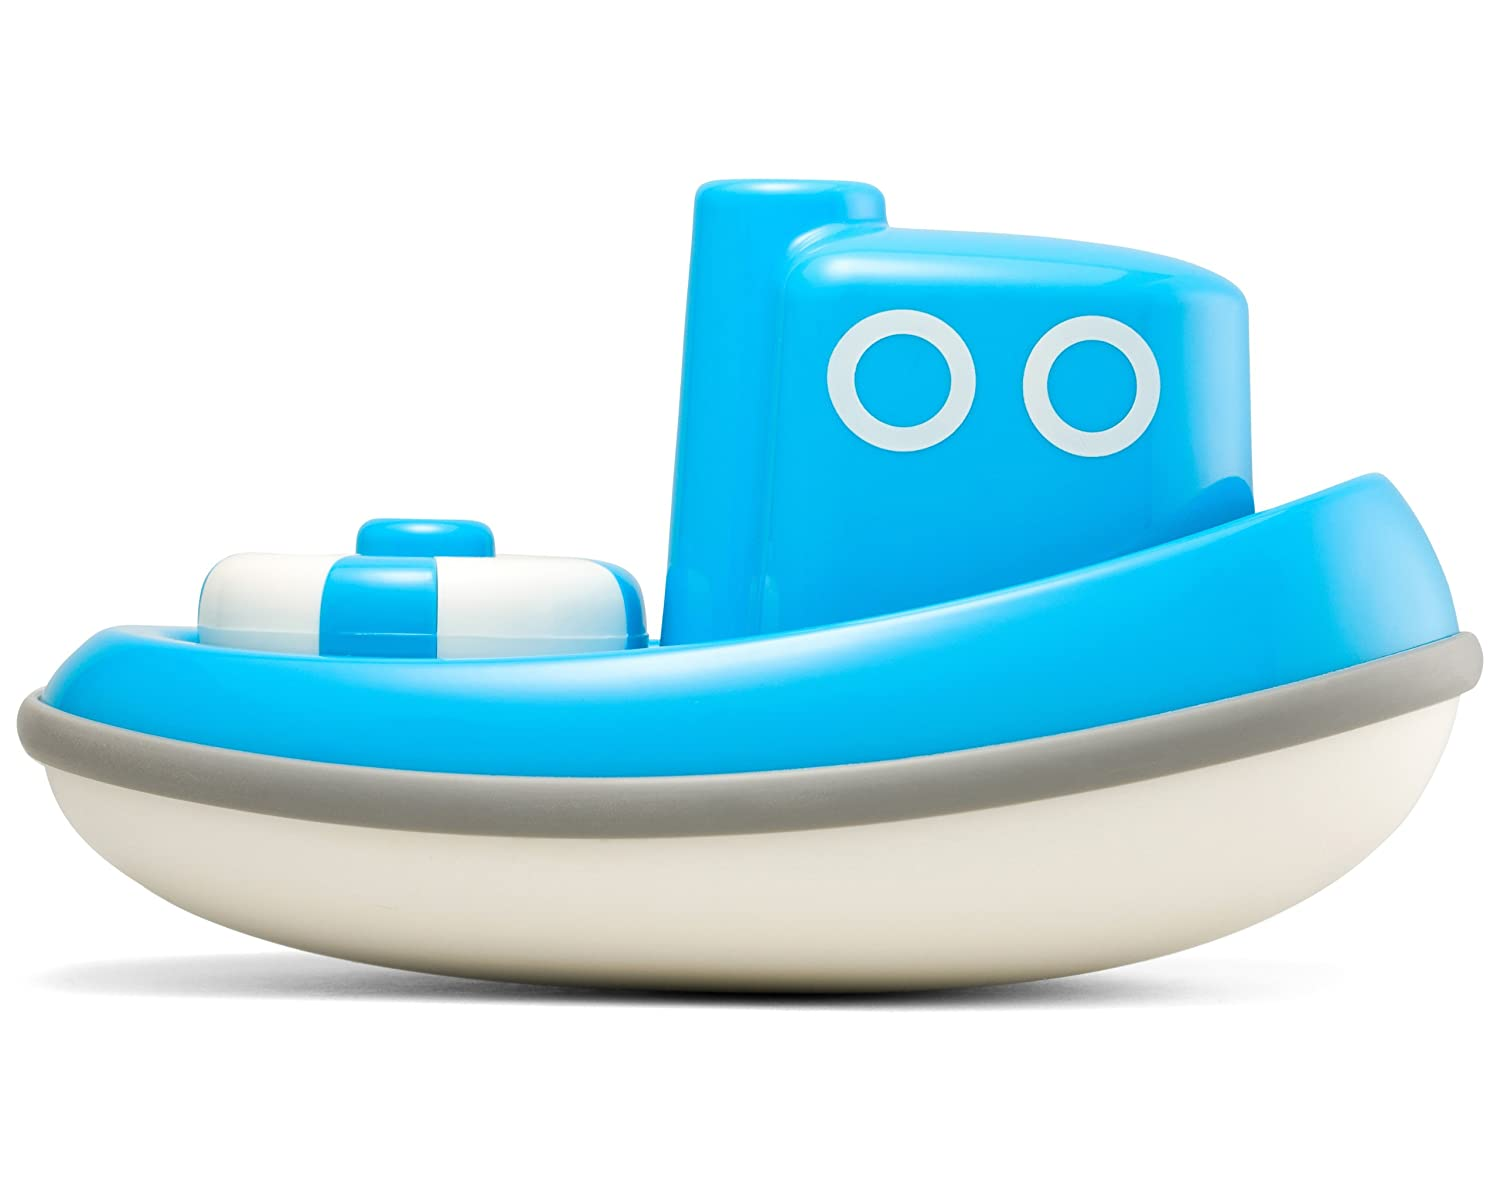 Amazon.com: Kid O Floating Tug Boat Bath Toy - Blue: Toys & Games